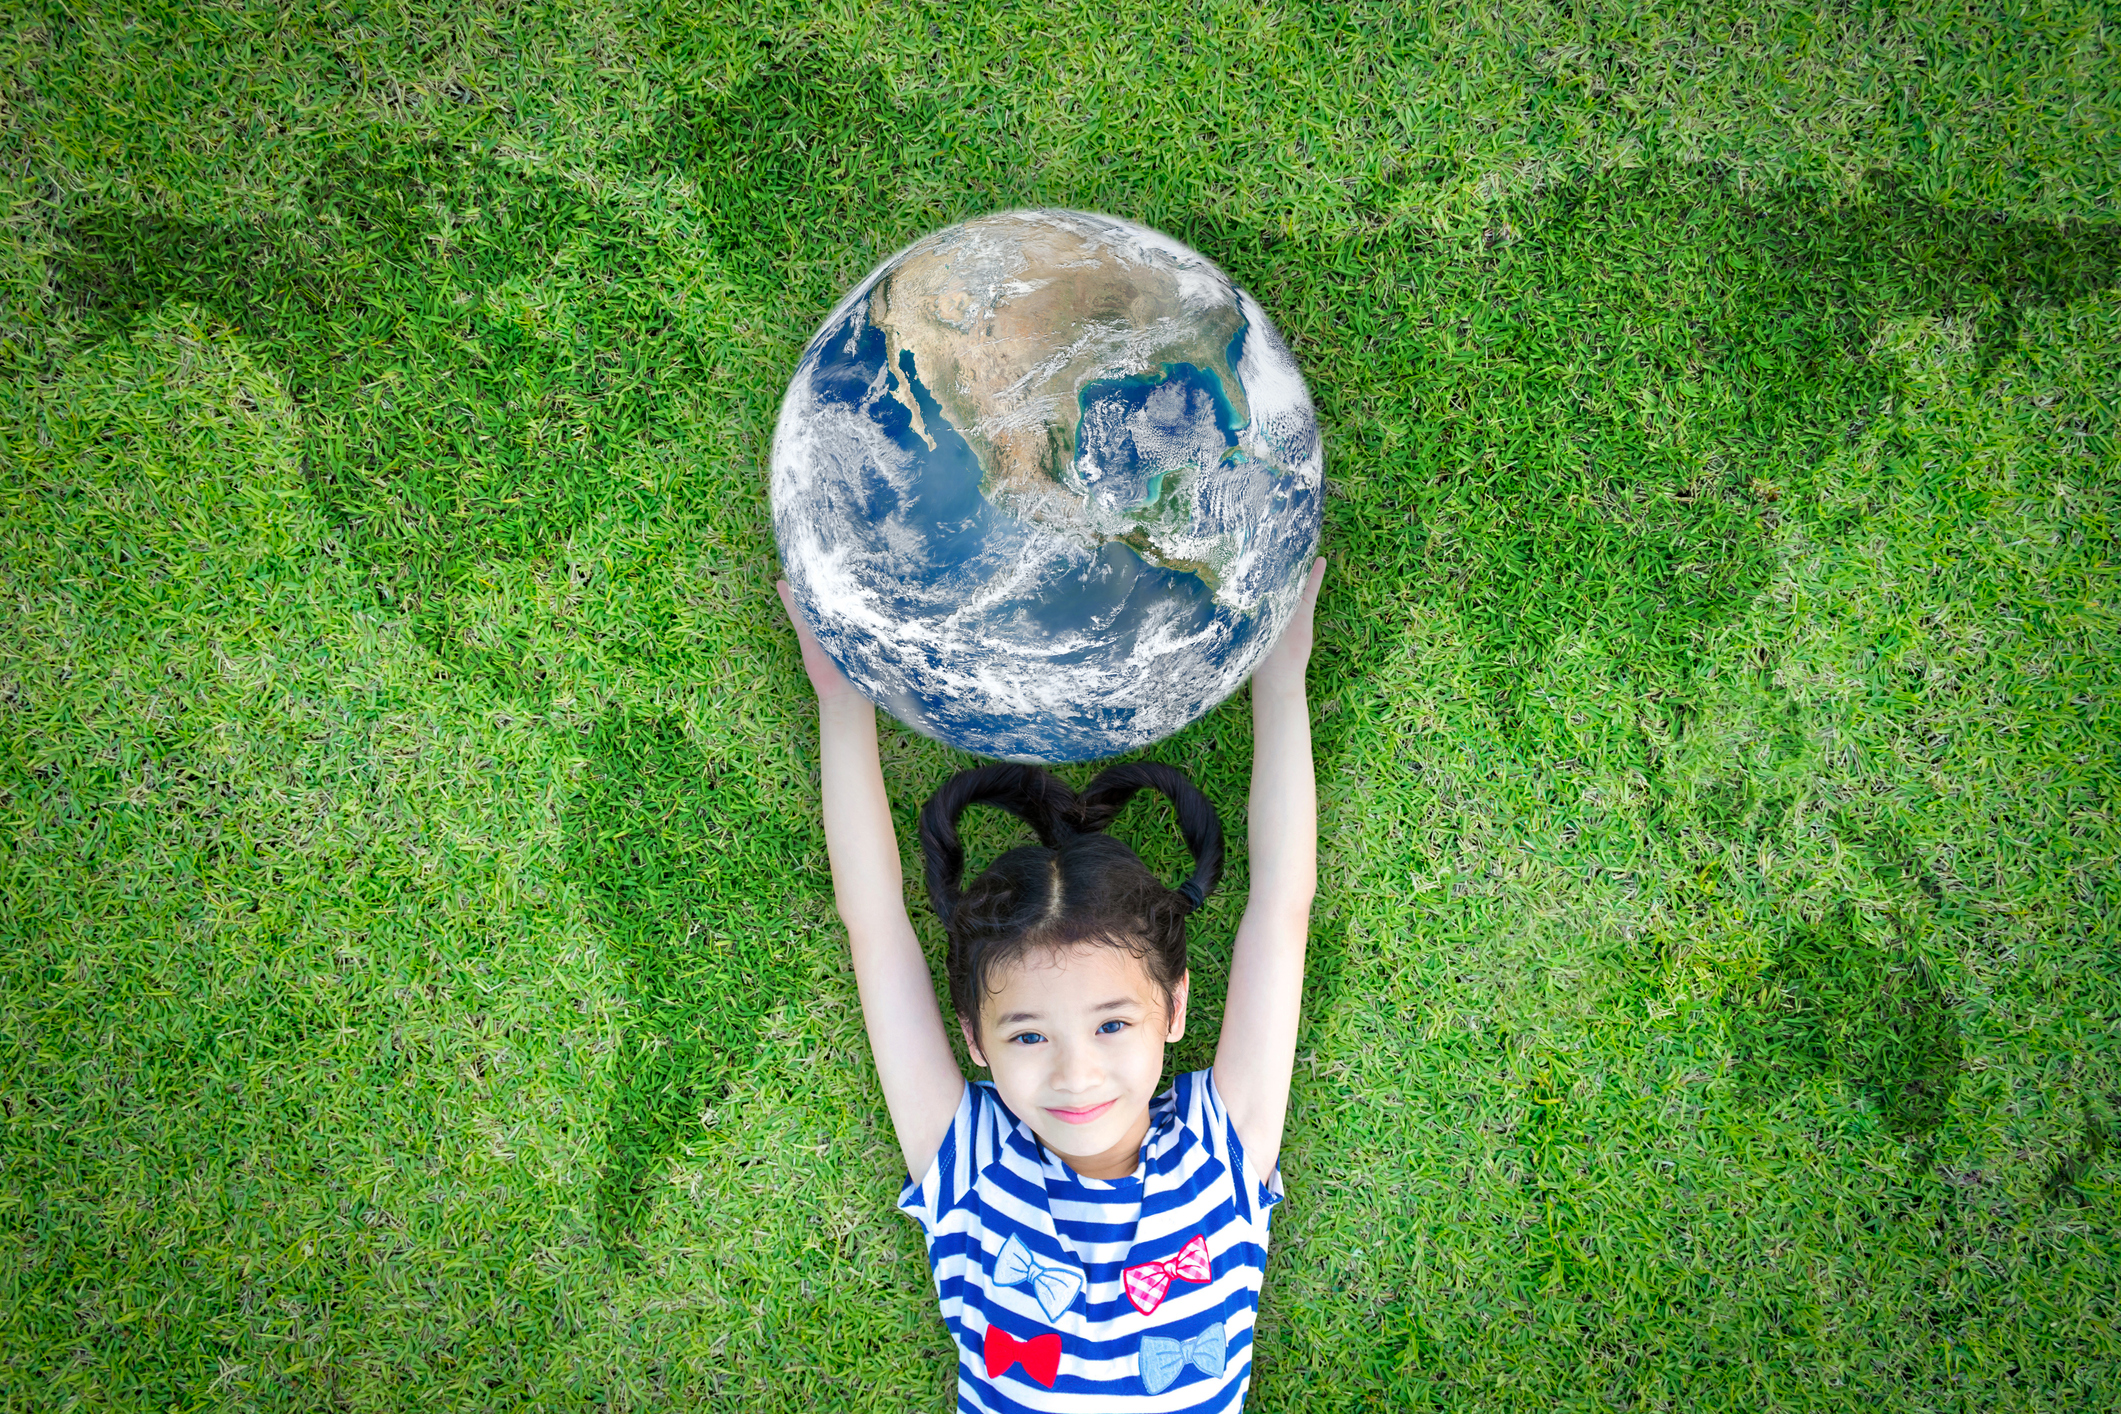 Earth day, ecological friendly and corporate social responsibility concept with kid raising world on green lawn: Element of the image furnished by NASA